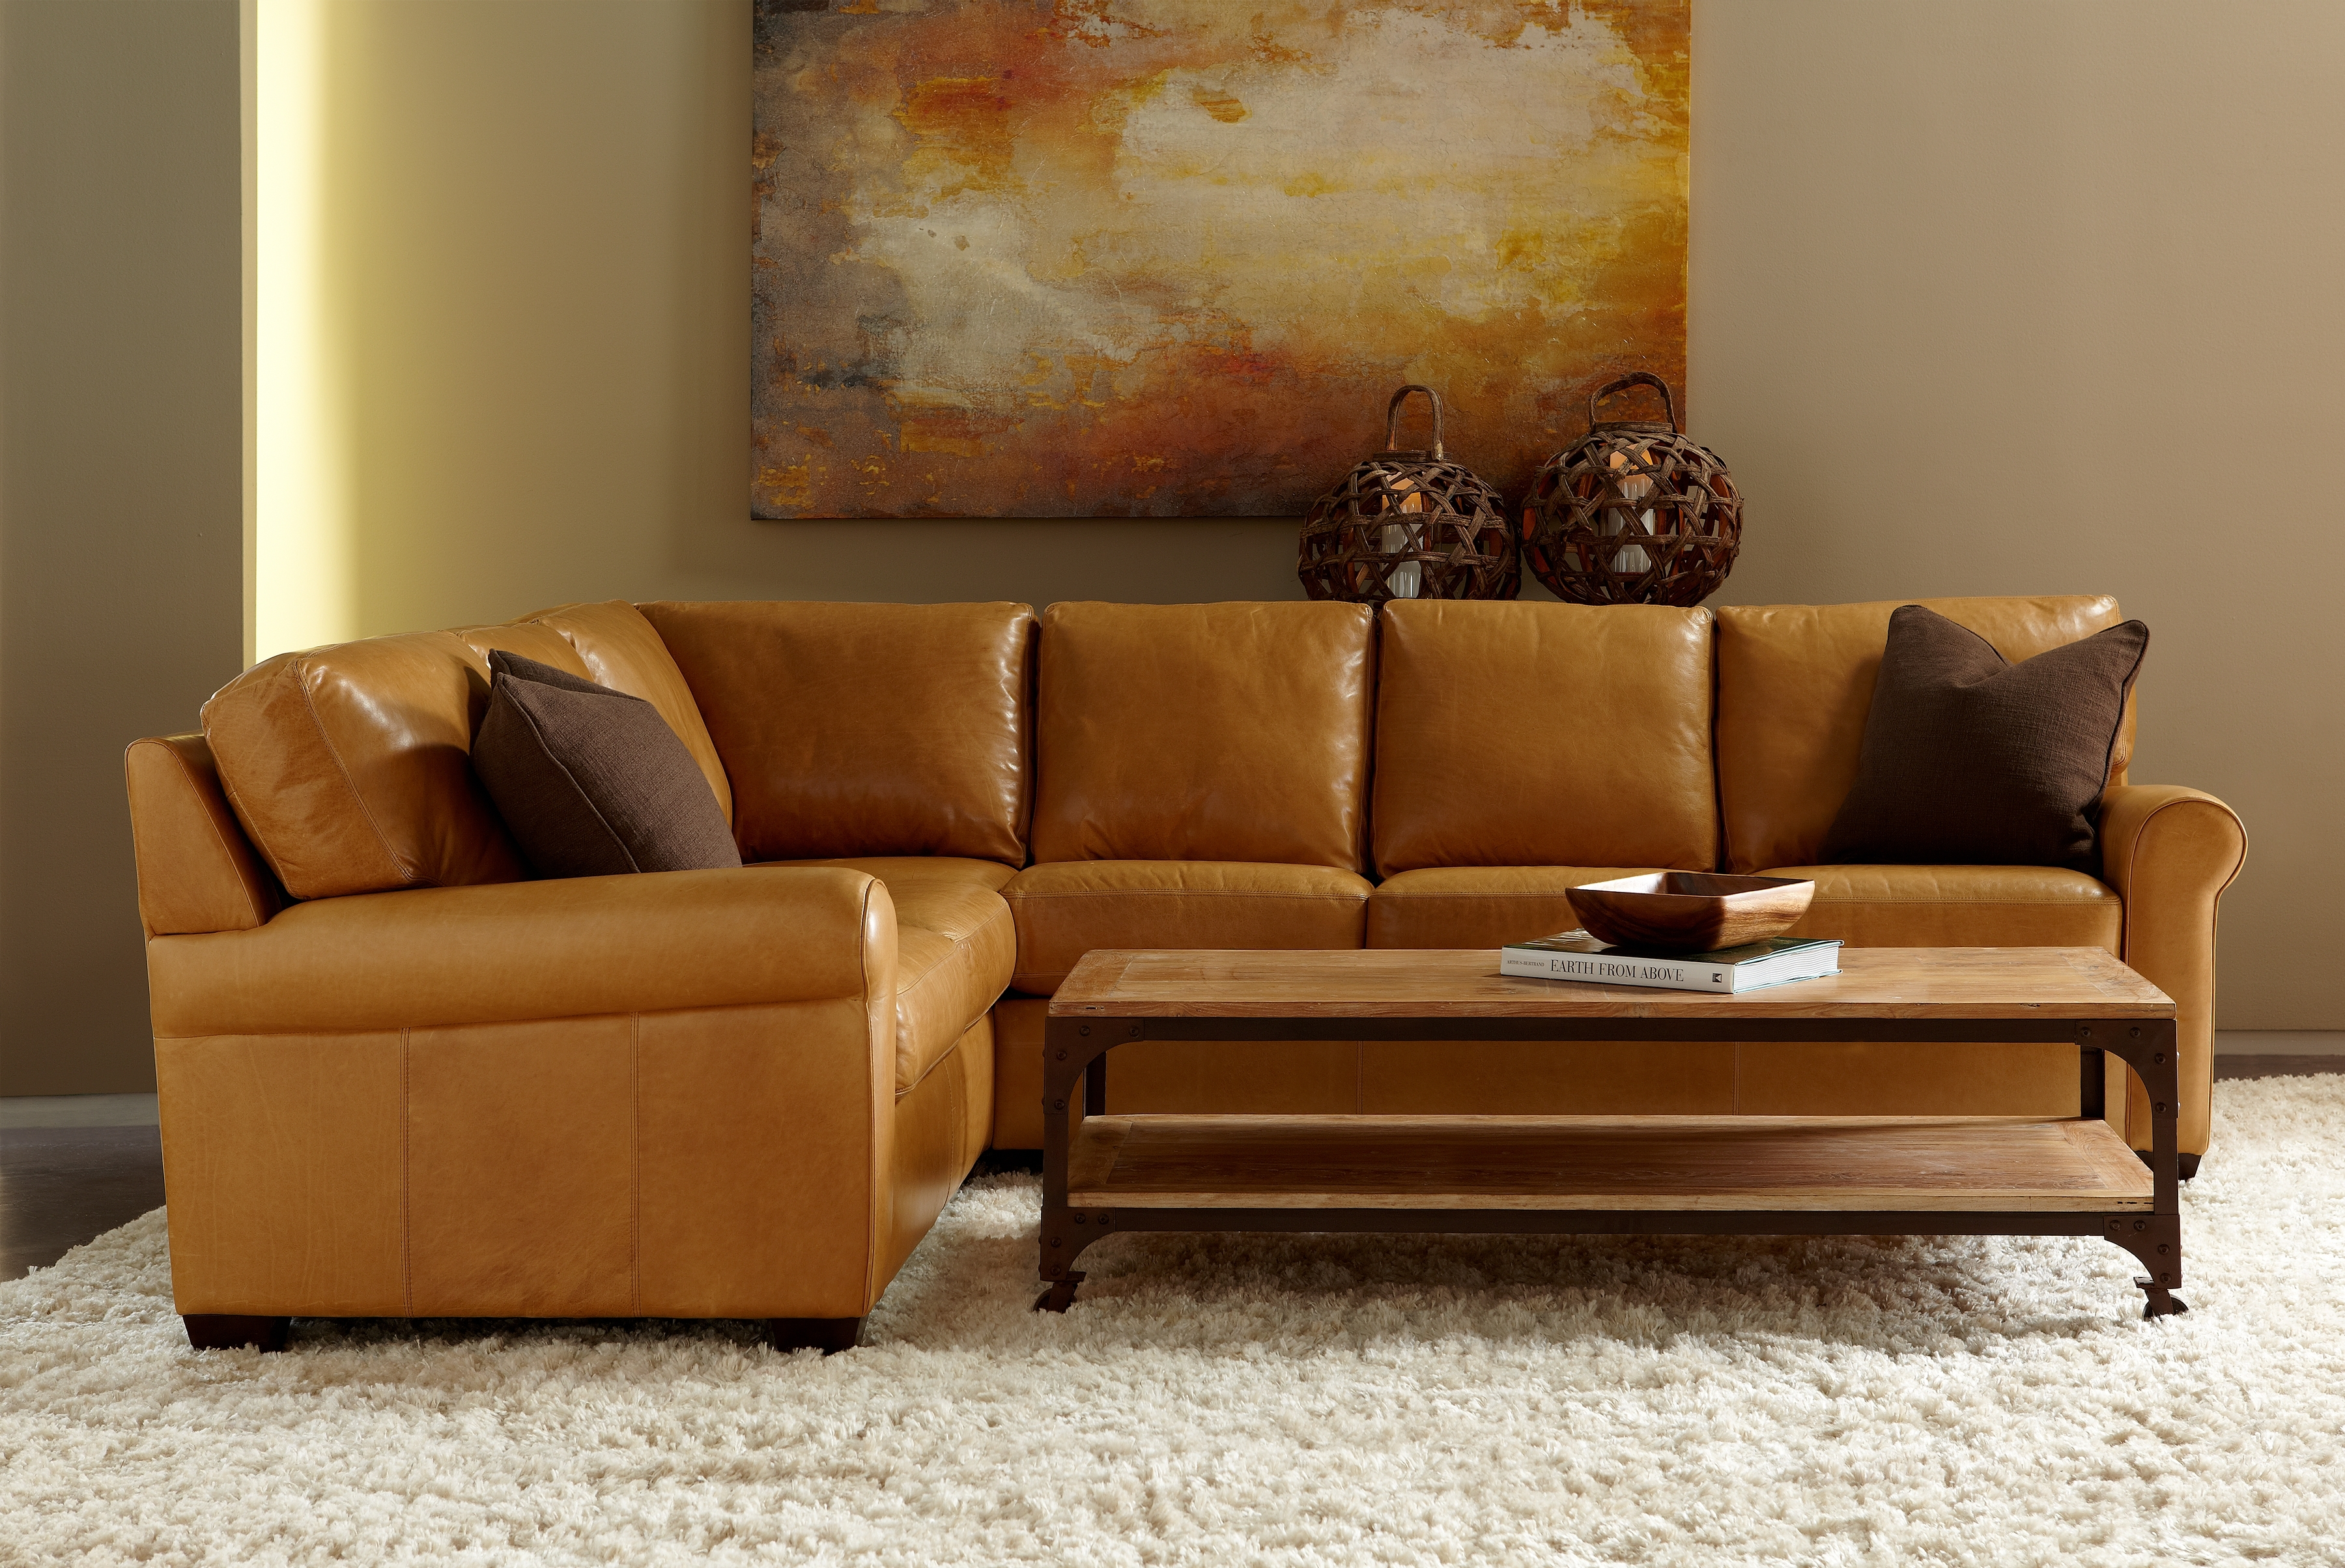 Sectional Sofas – Elegance And Style Tailored Just For Youand Pertaining To Sam Levitz Sectional Sofas (View 10 of 10)